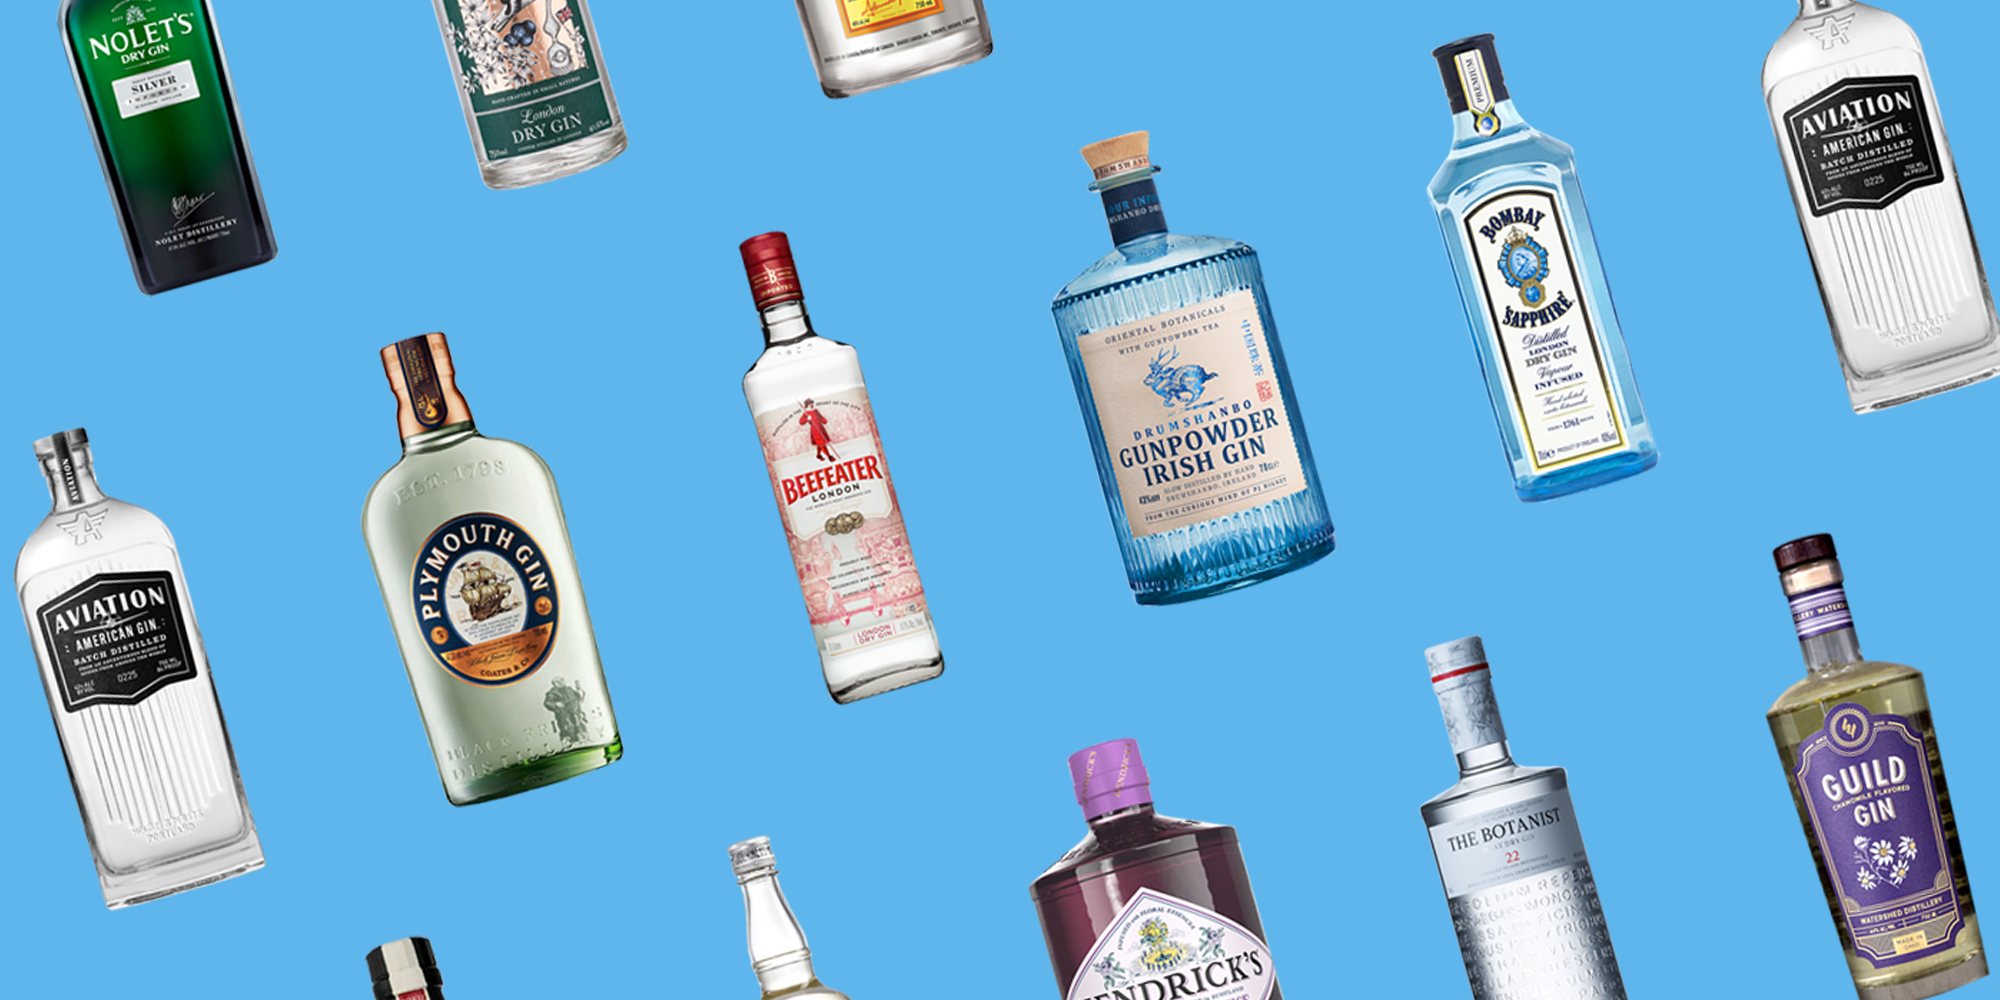 15 Best Gin Brands 2019 - What Gin Bottles to Buy Right Now